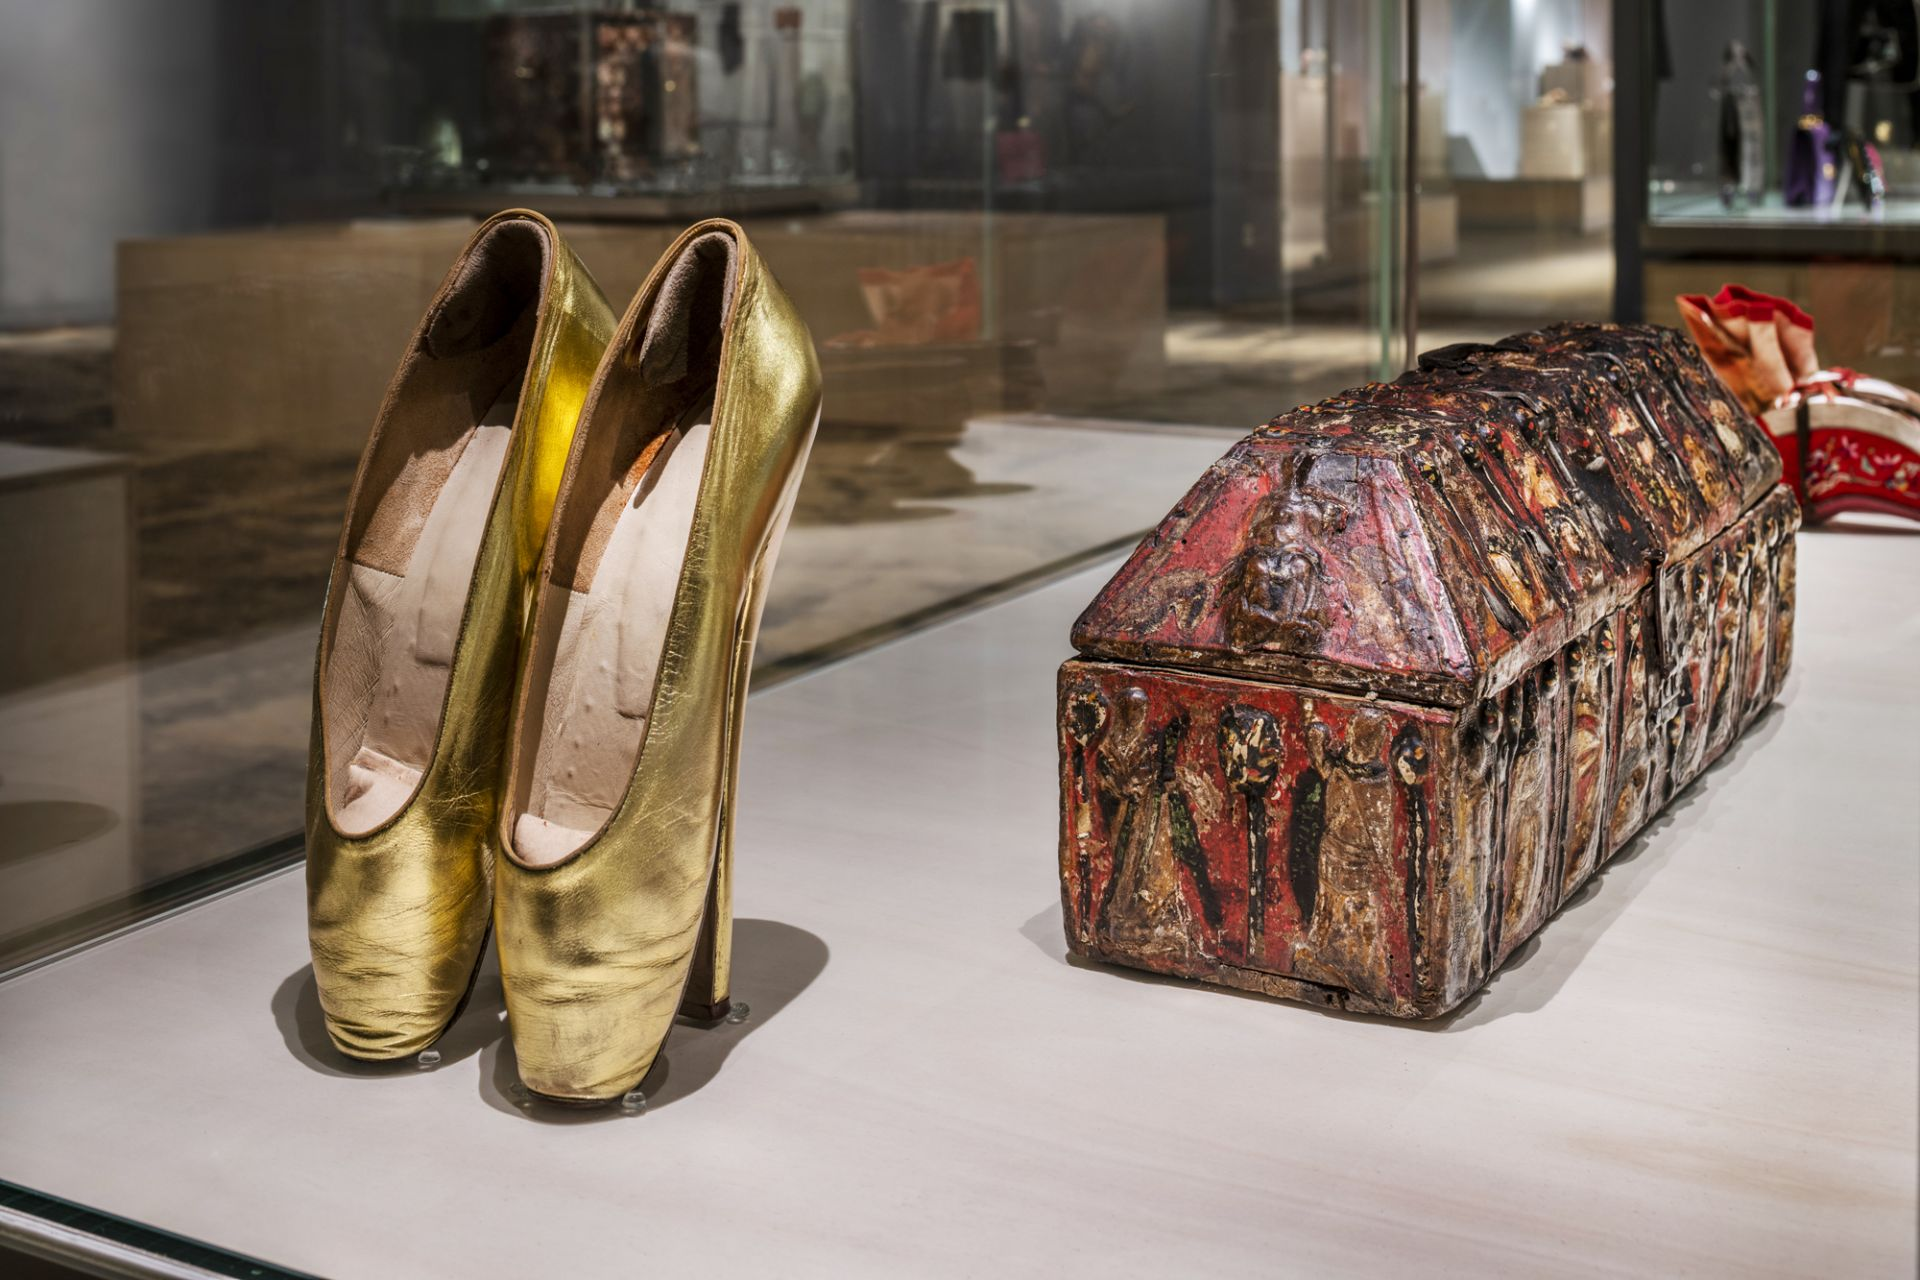 Fetish pumps, ballet heels, origin unknown, 1935/1936 and lover's box, probably Italy, 14th century